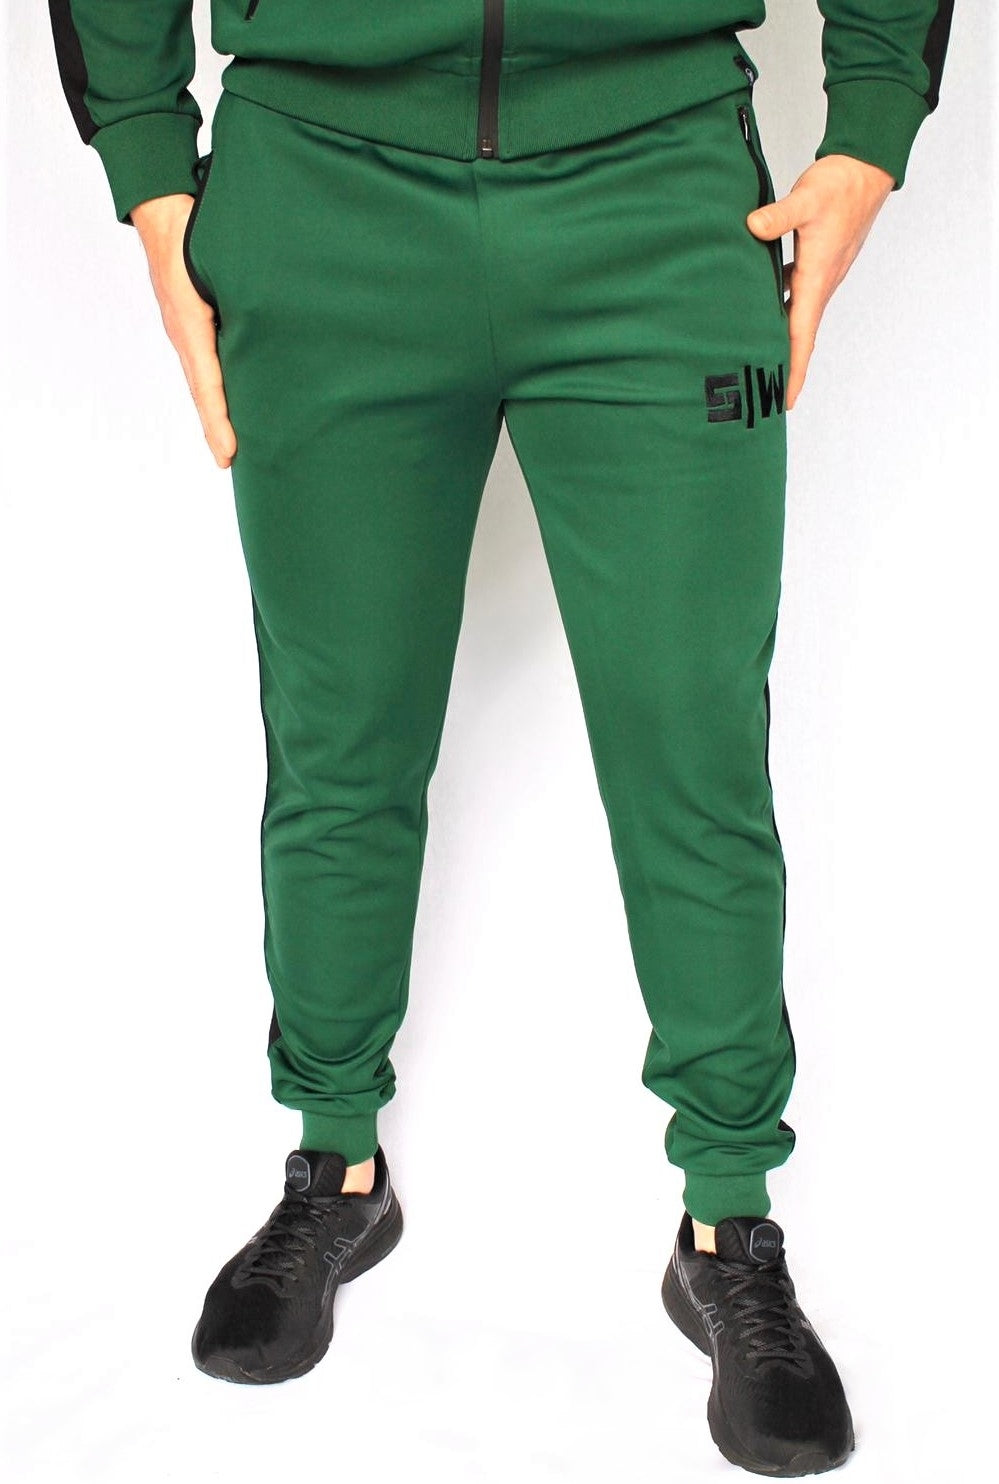 OG Zipper Tracksuit Pants - Green